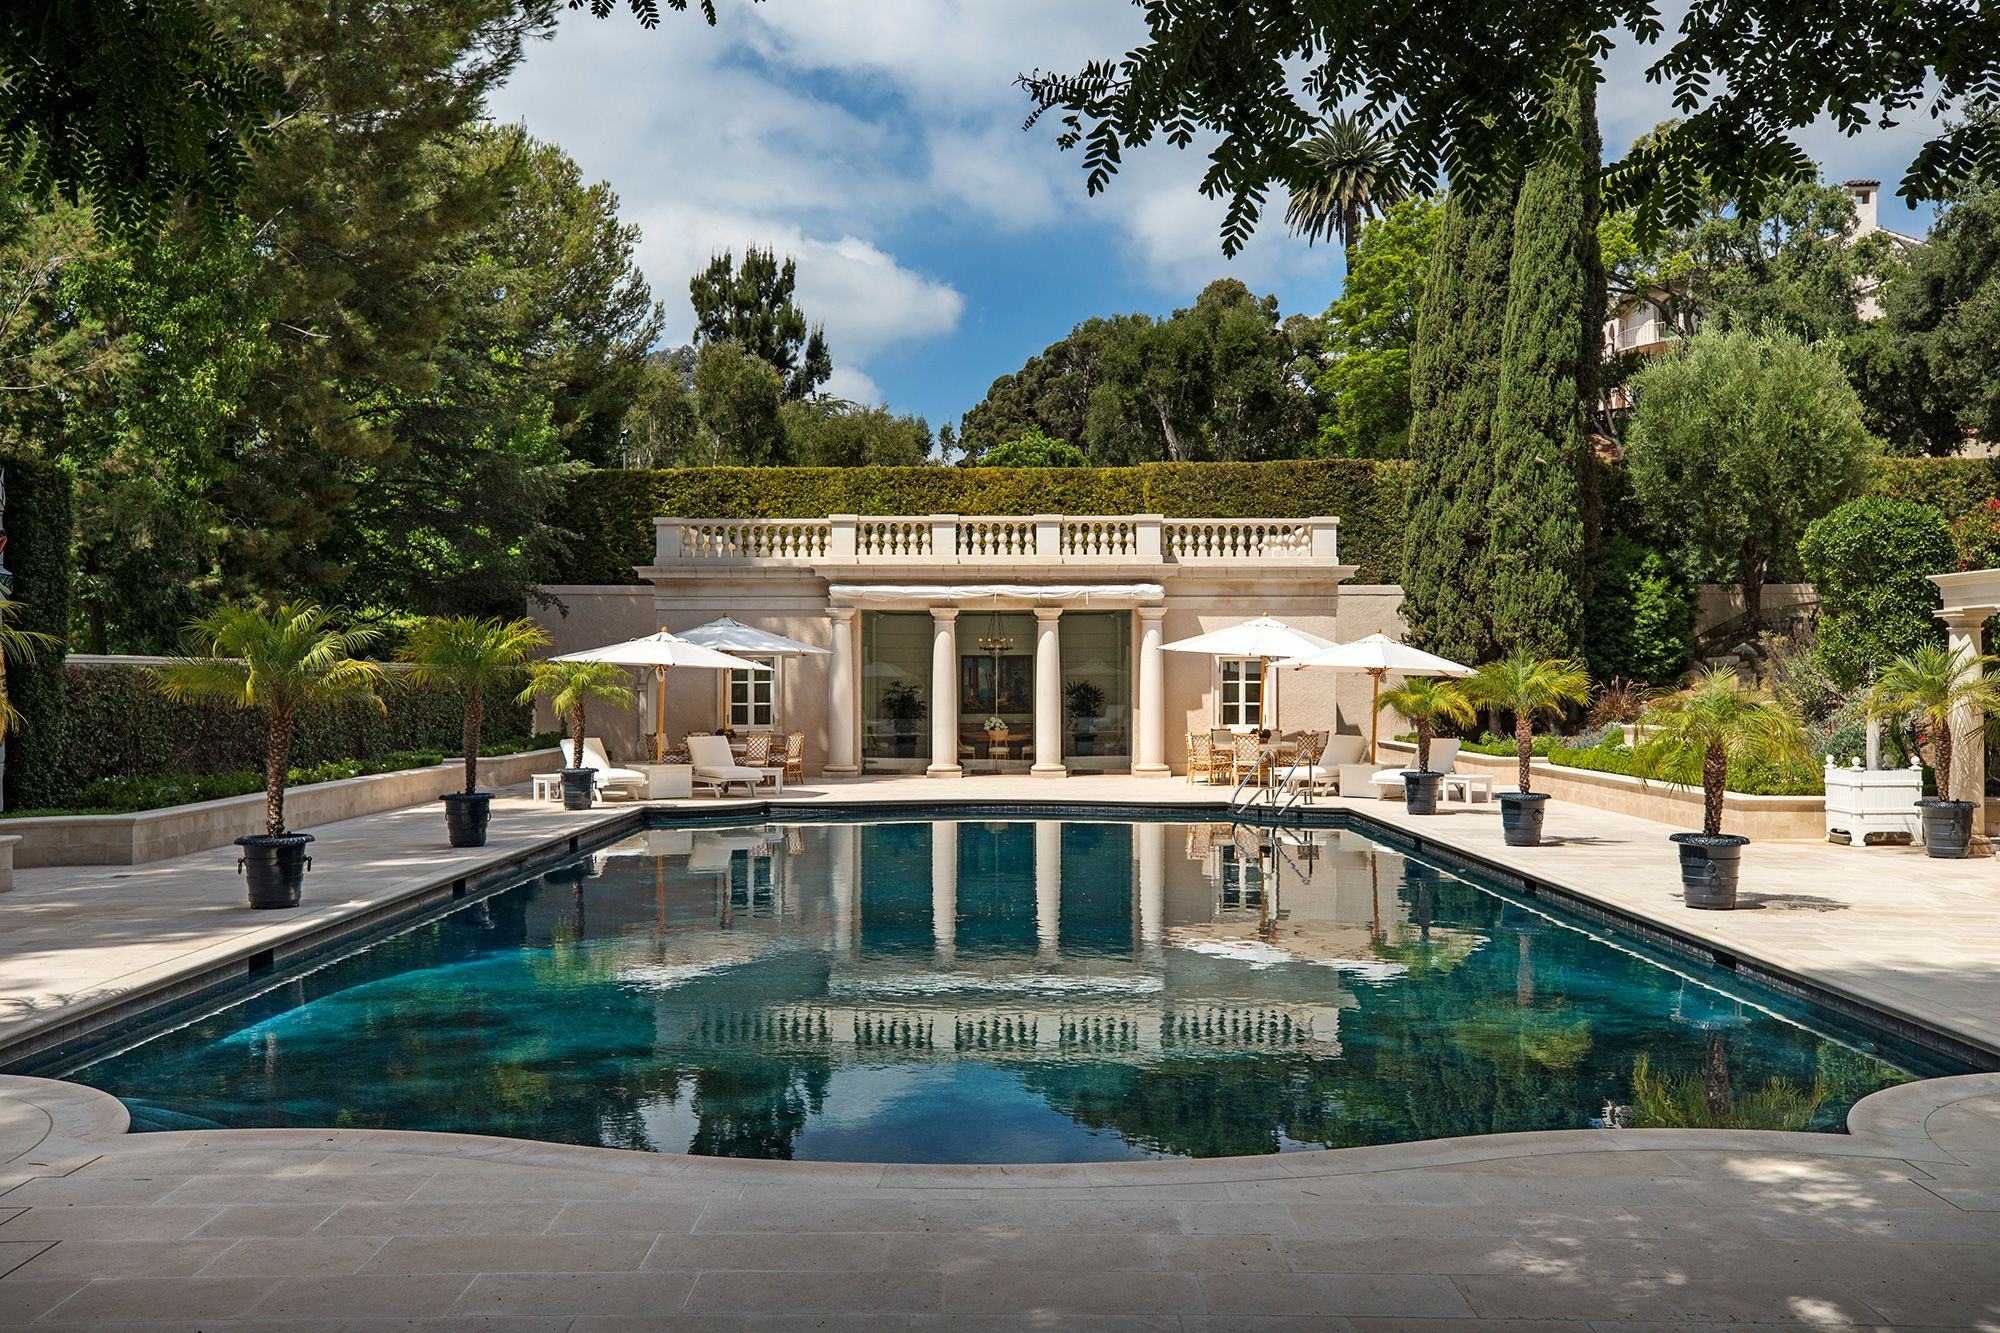 The Real Beverly Hillbillies Mansion Sells for about 150M